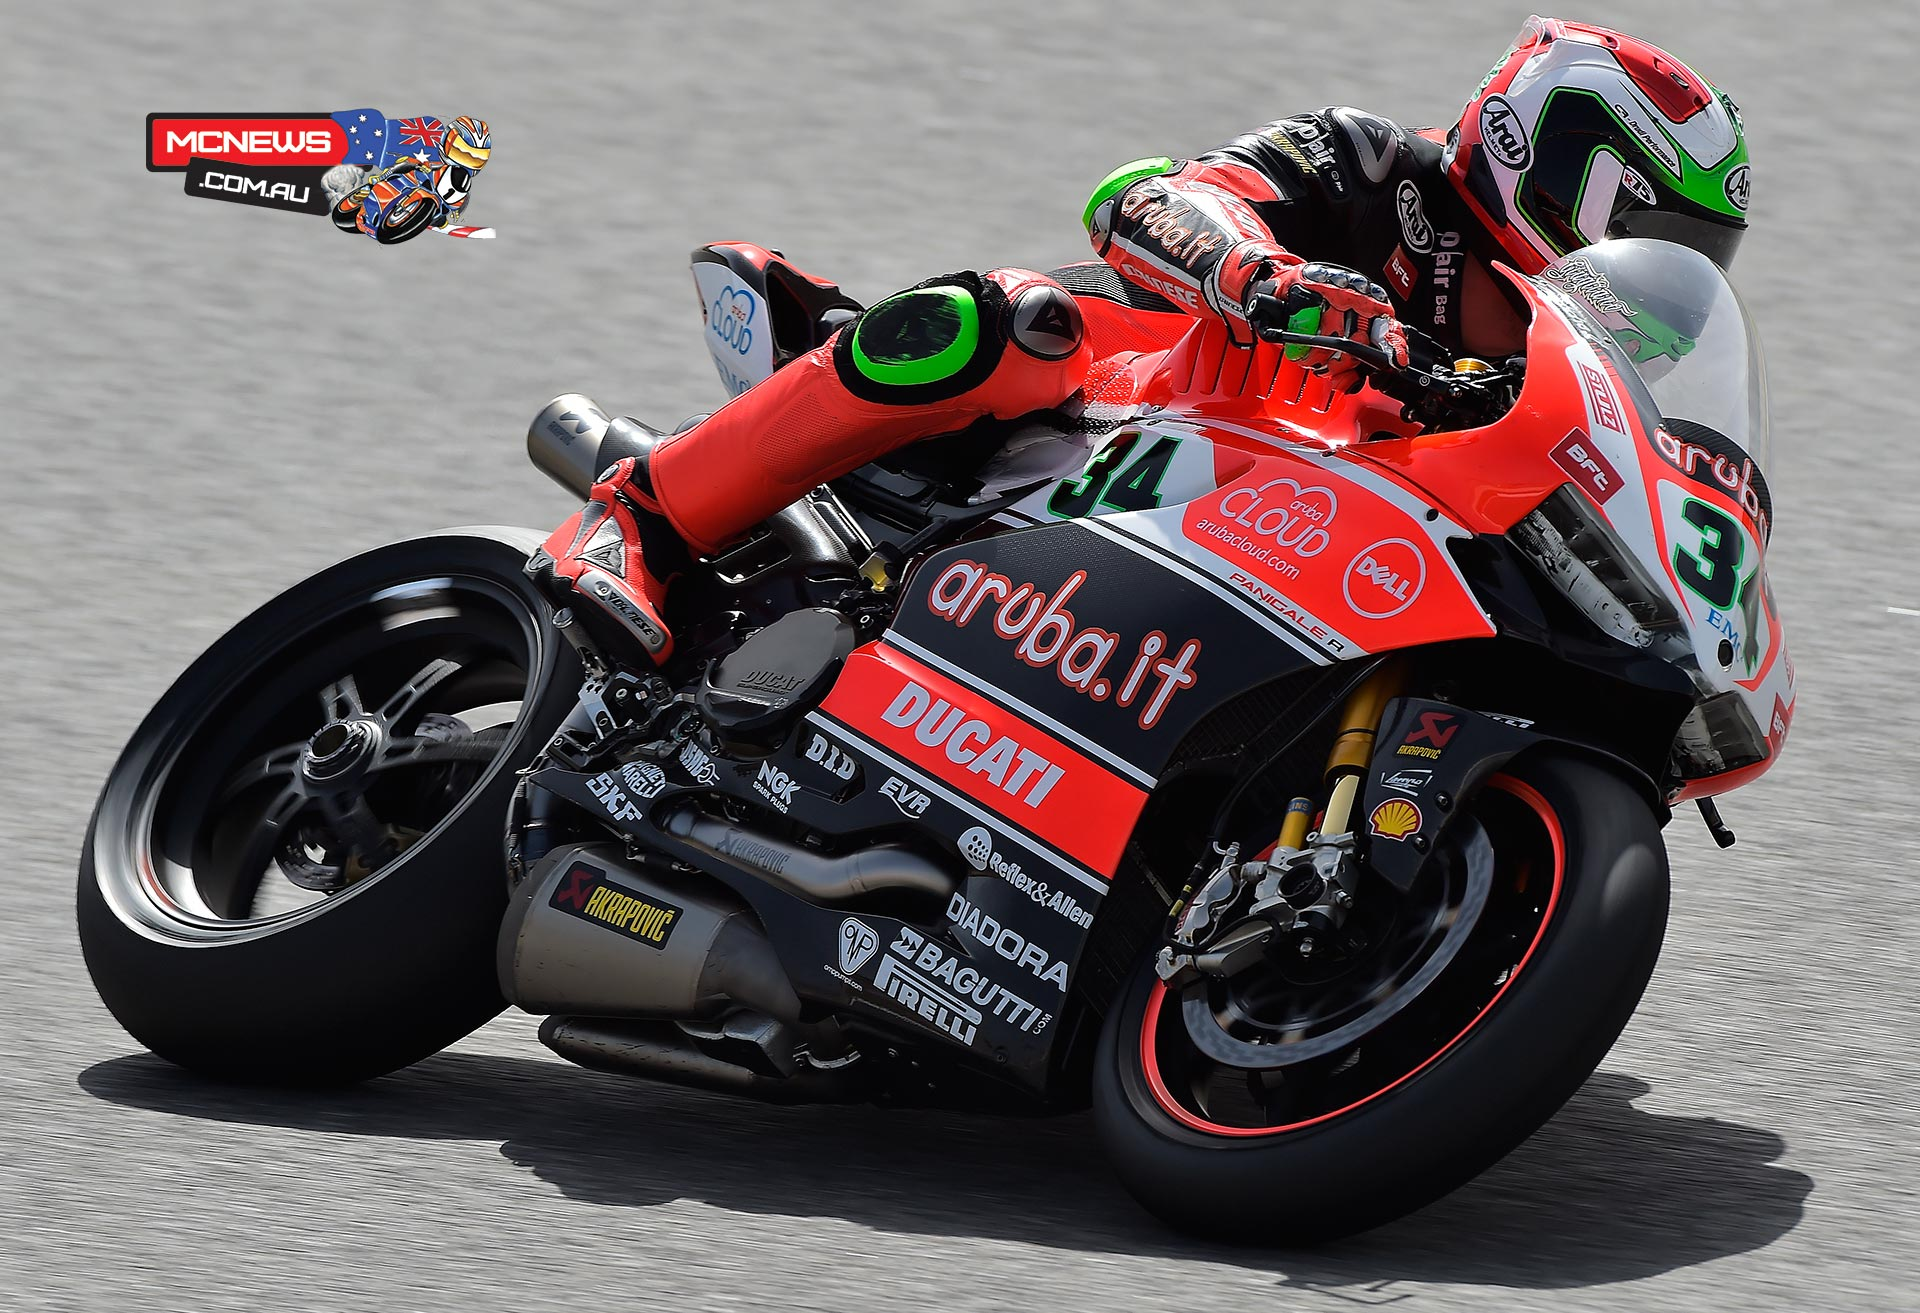 Davide Giugliano - (Aruba.it Racing - Ducati Superbike Team #34)